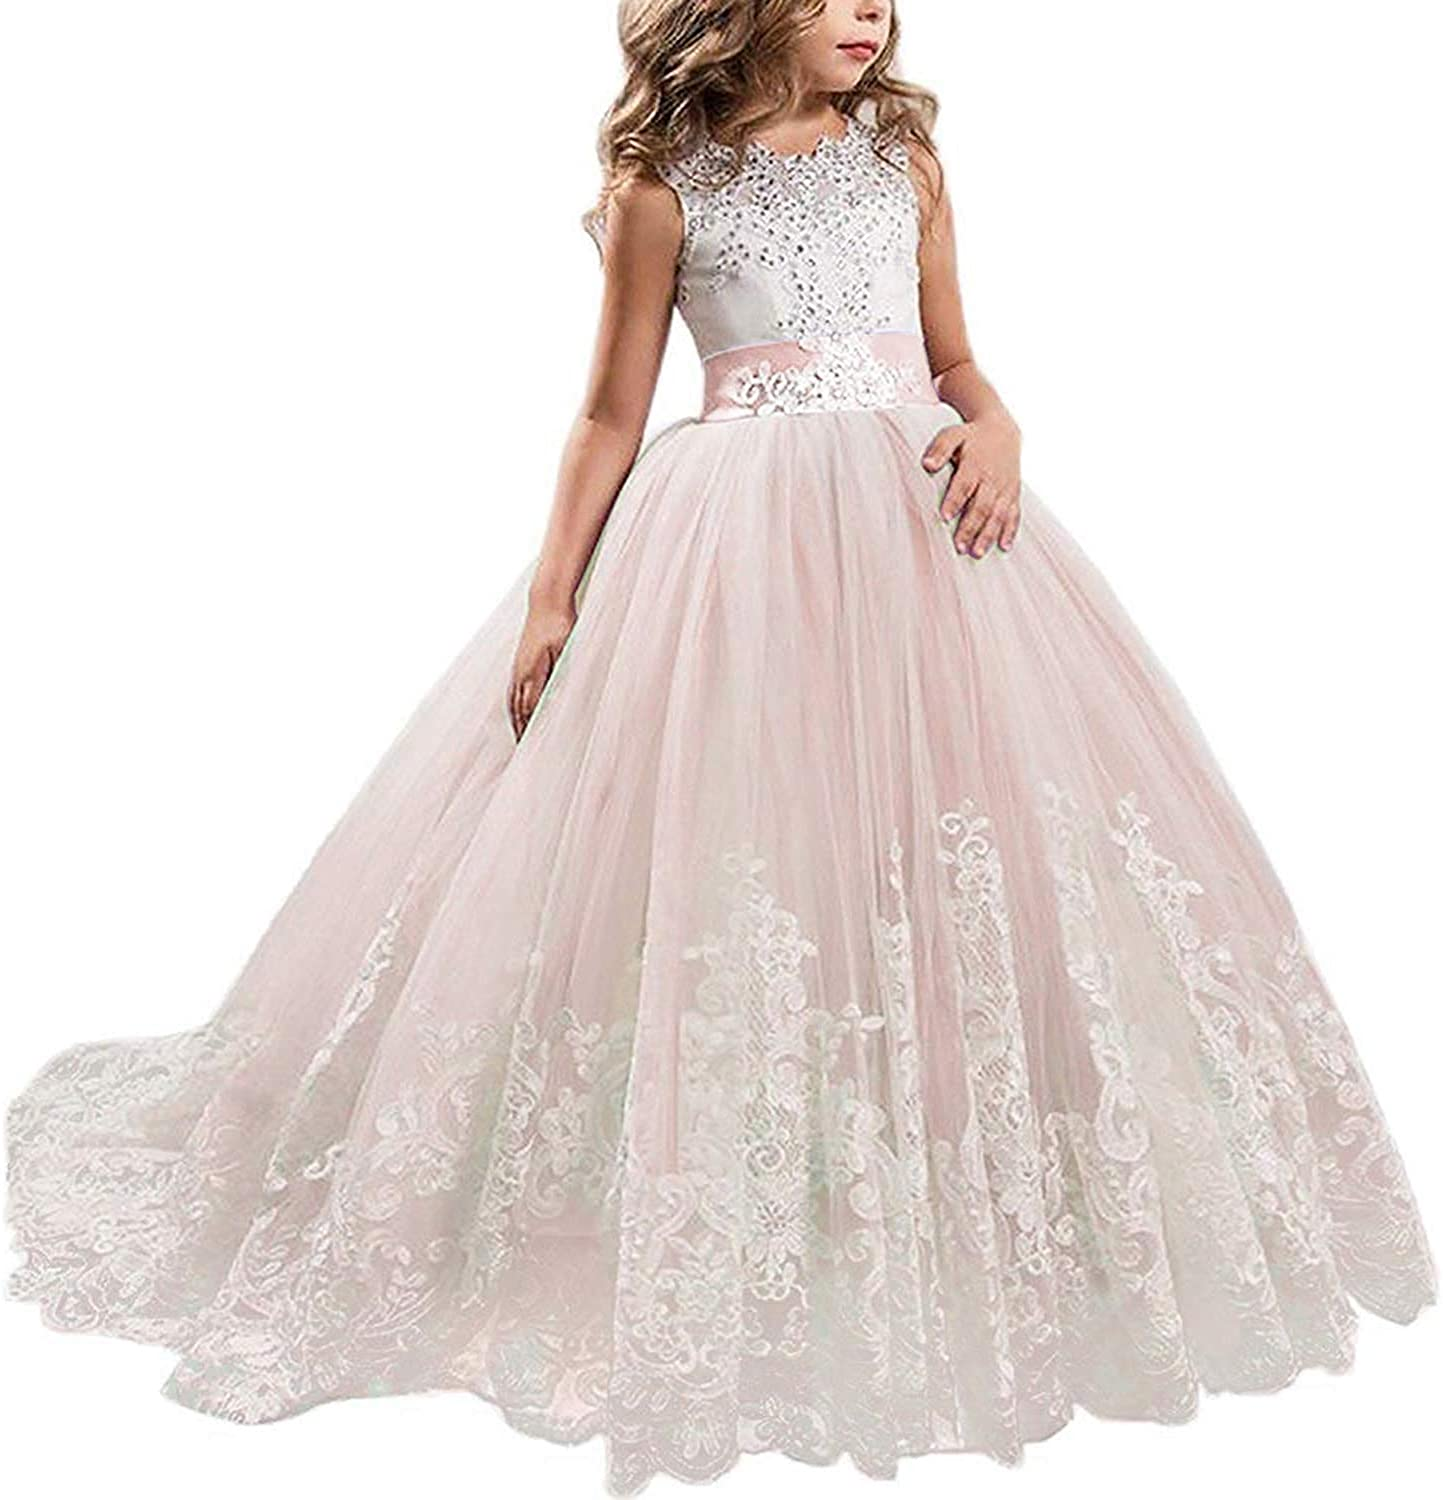 TTYAOVO Girls Embroidery Princess Dress Wedding Birthday Party Long Tail Prom Gowns